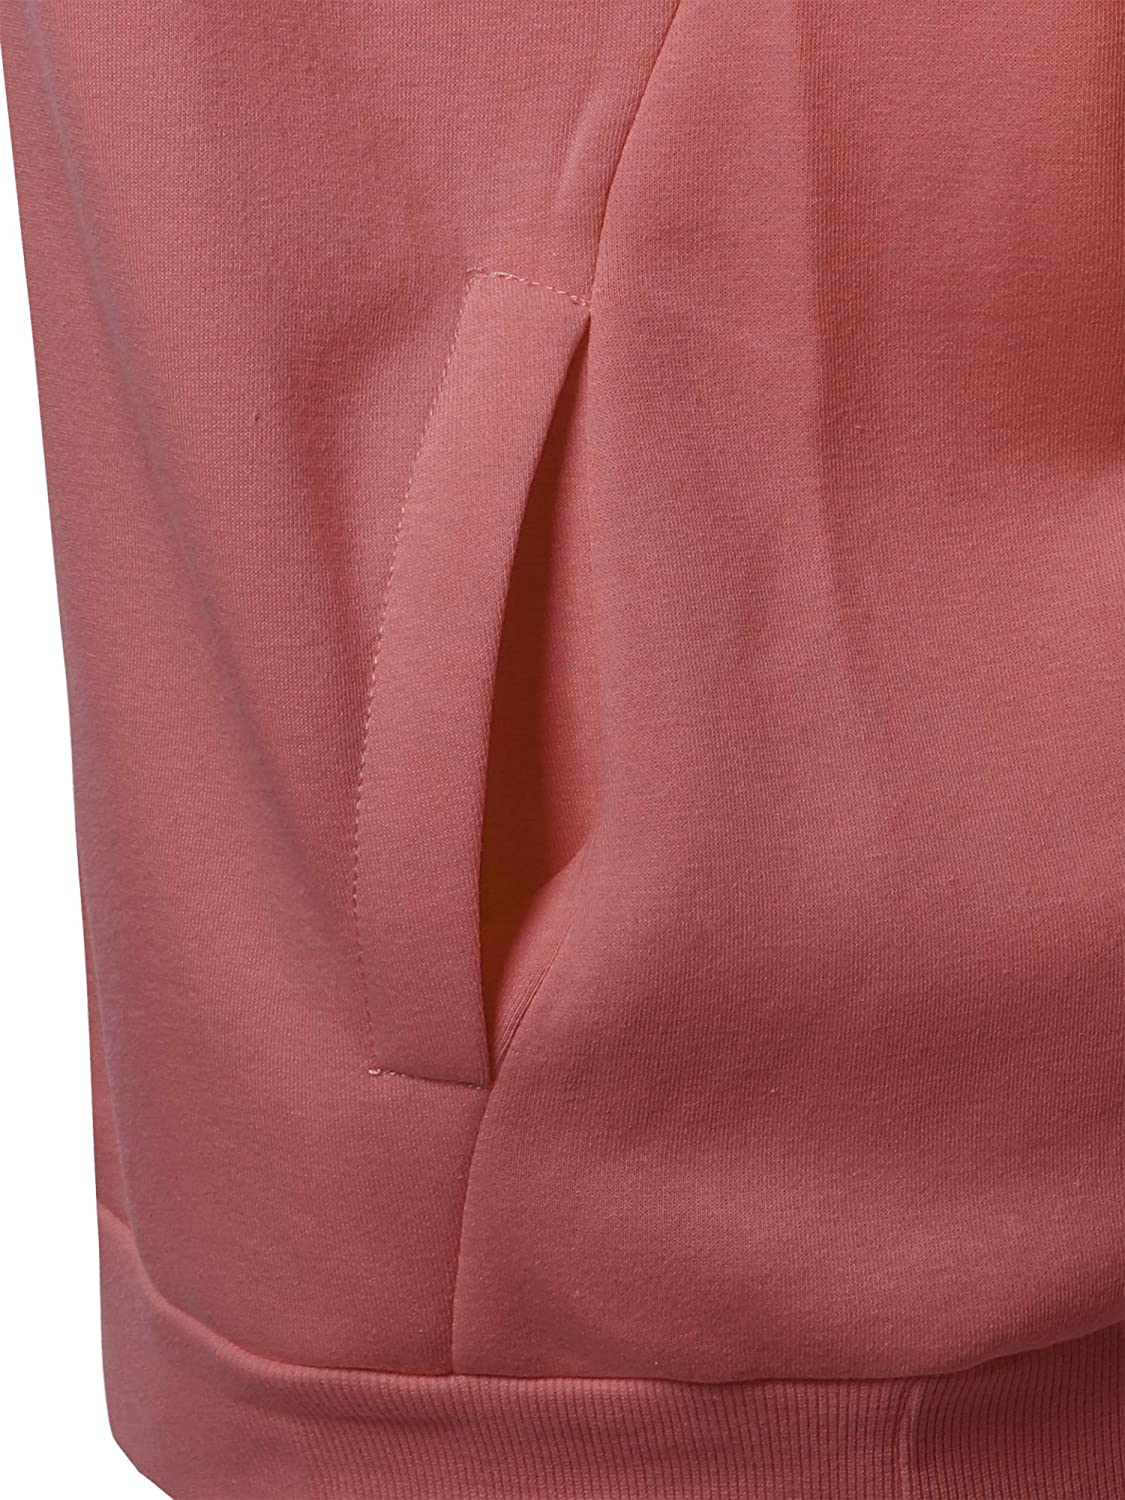 A2Y Womens Relaxed Fit Long Sleeve Crew Neck Side Pocket Sweatshirt